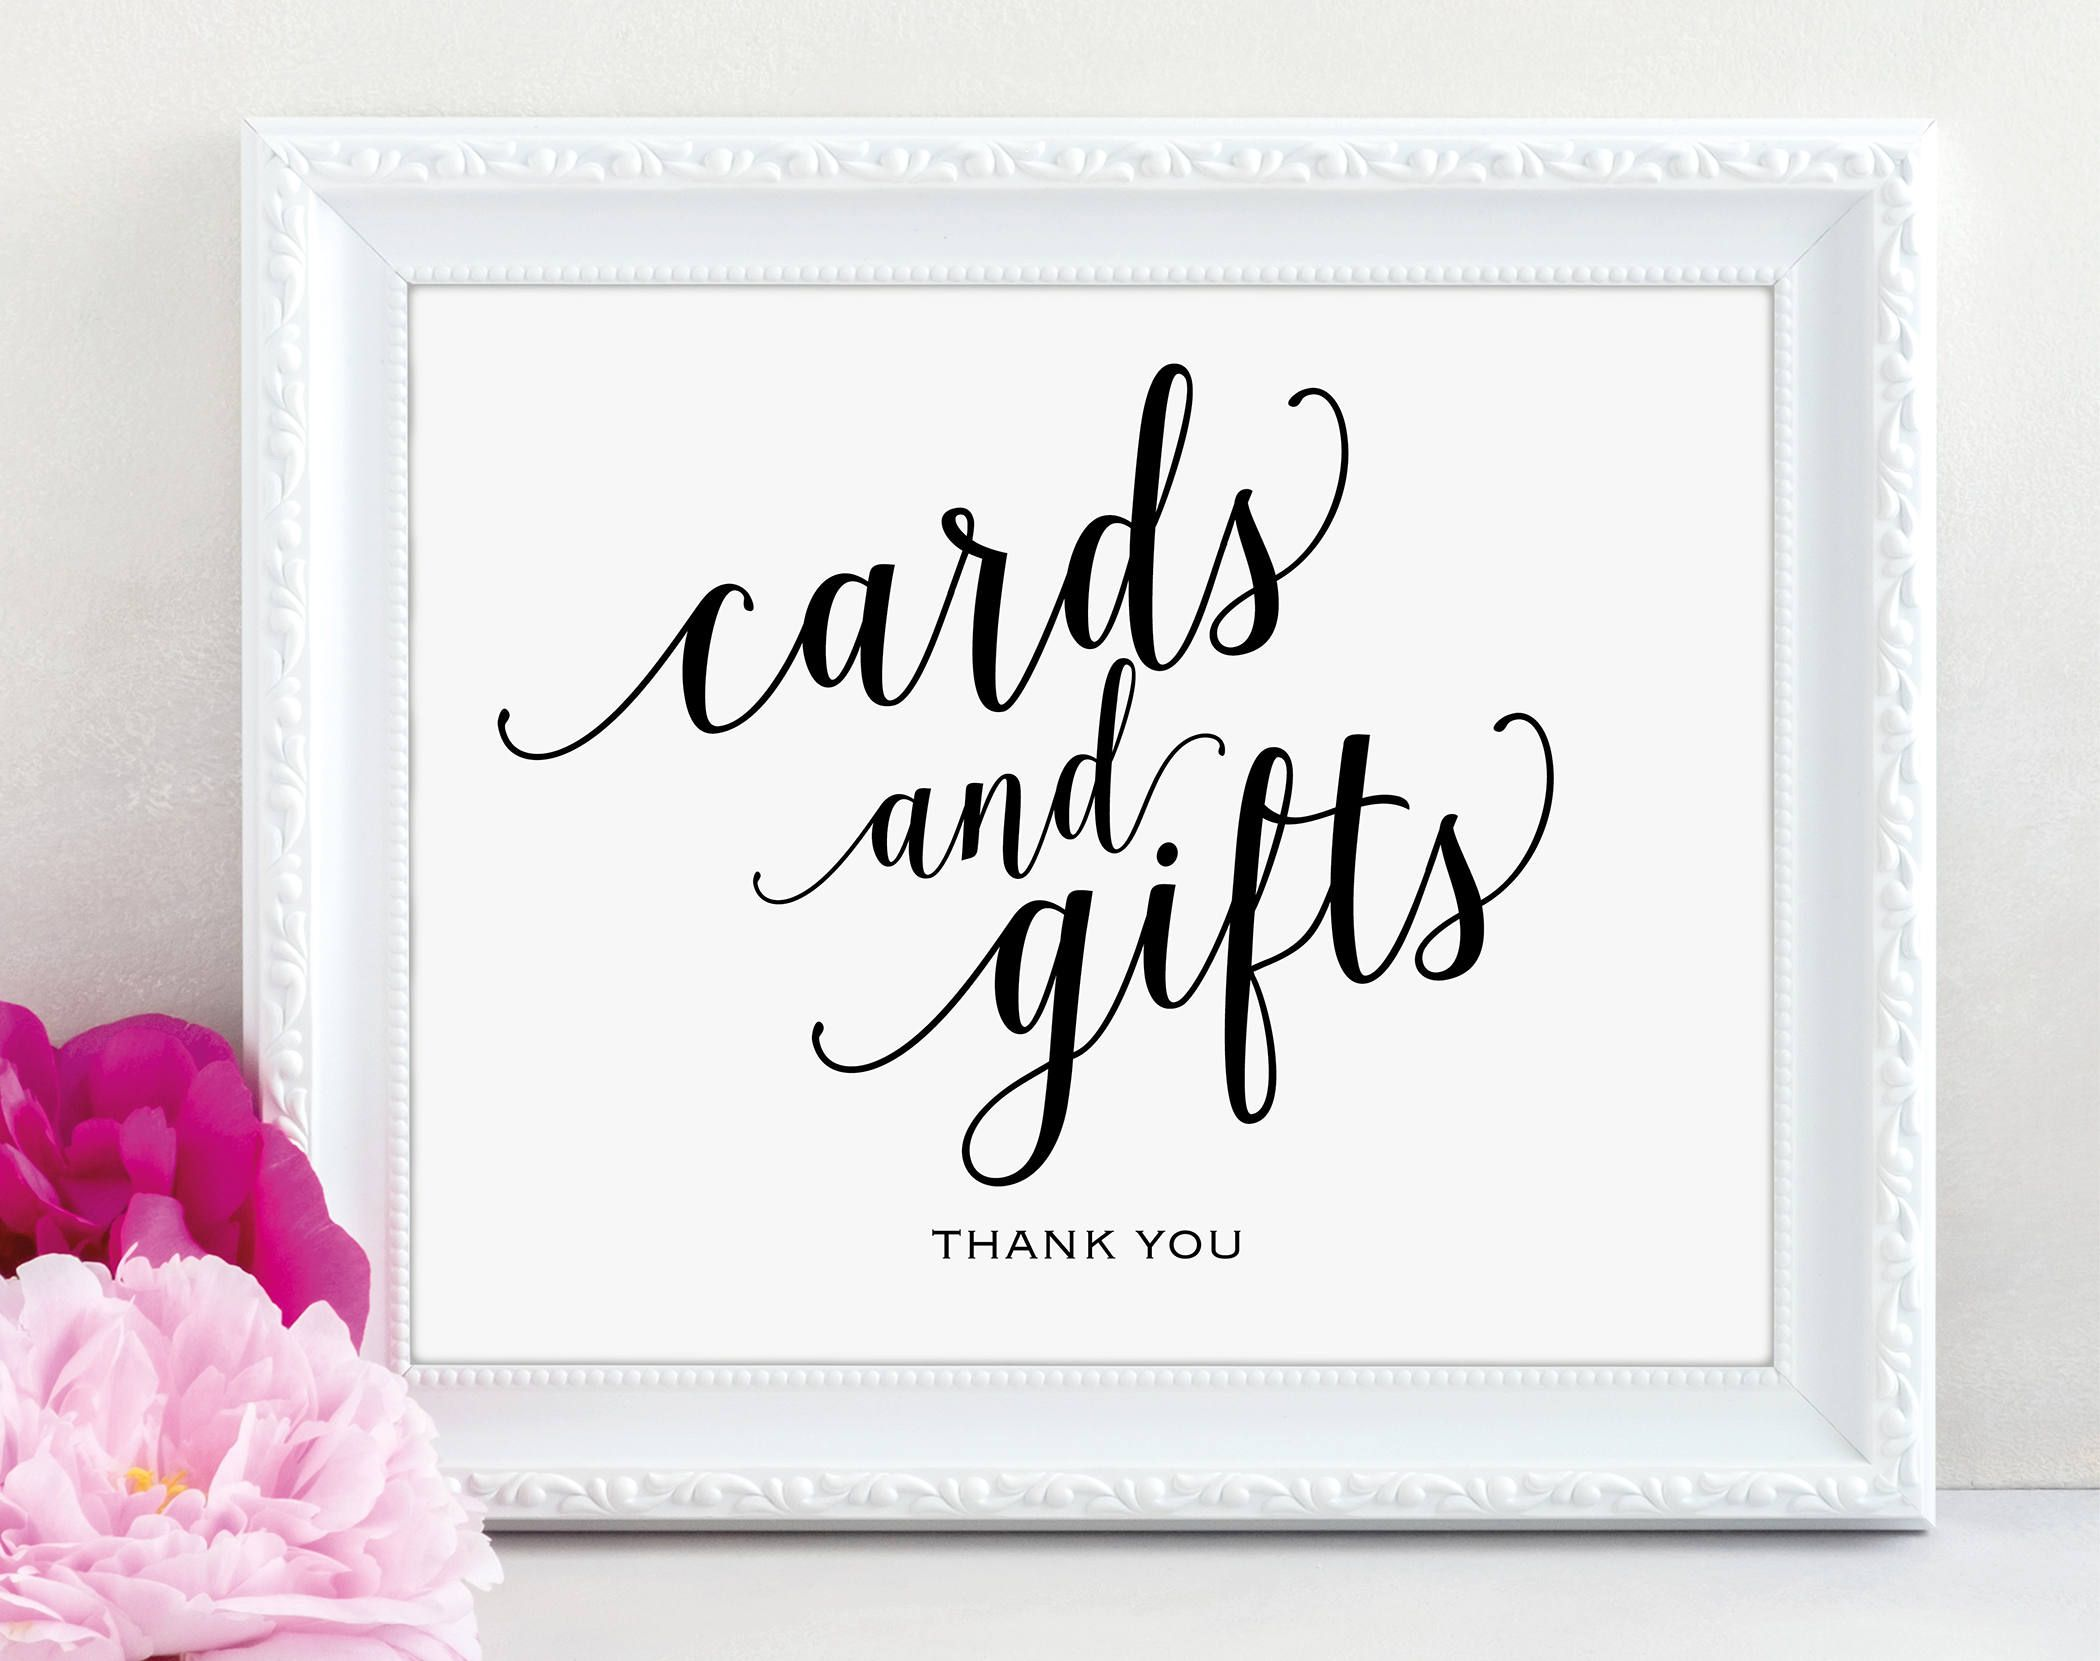 Cards And Gifts Sign Cards Gifts Printable Gift Table Etsy Printable Wedding Sign Gift Table Signs Wedding Invitations Printable Templates